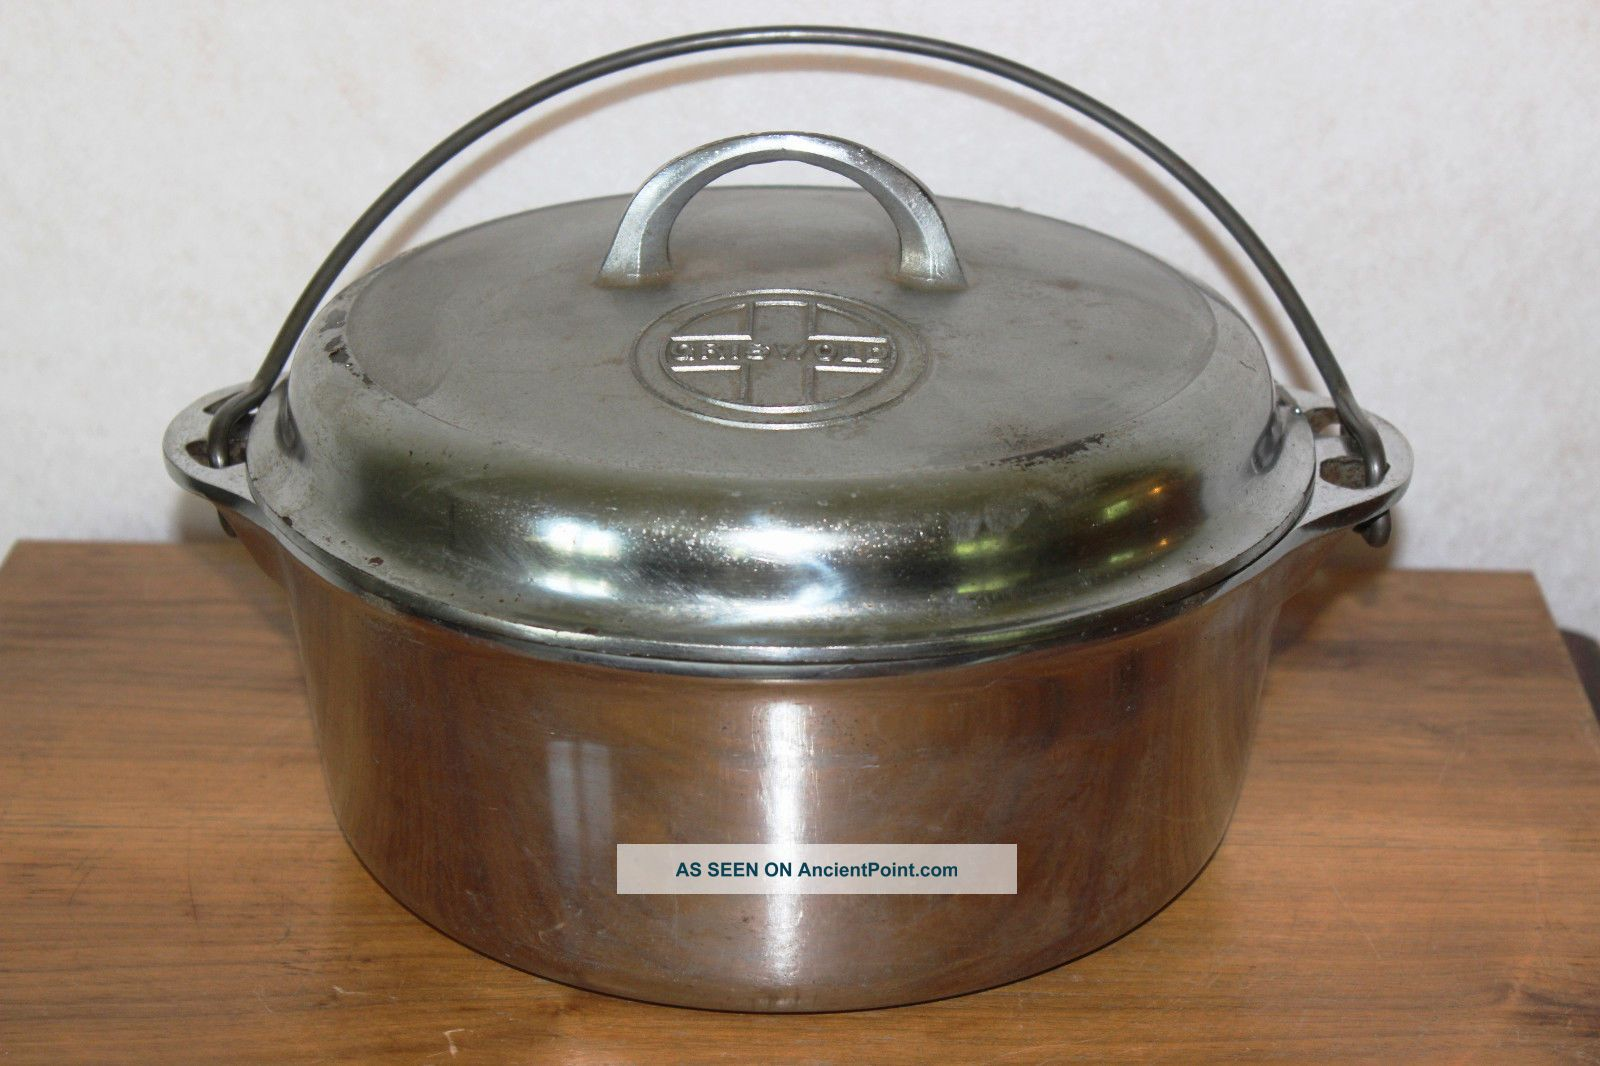 Vintage 1940 ' S Griswold 8 Cast Iron Dutch Oven 1278 W/ Button Logo Duo Chrome Other Antique Home & Hearth photo